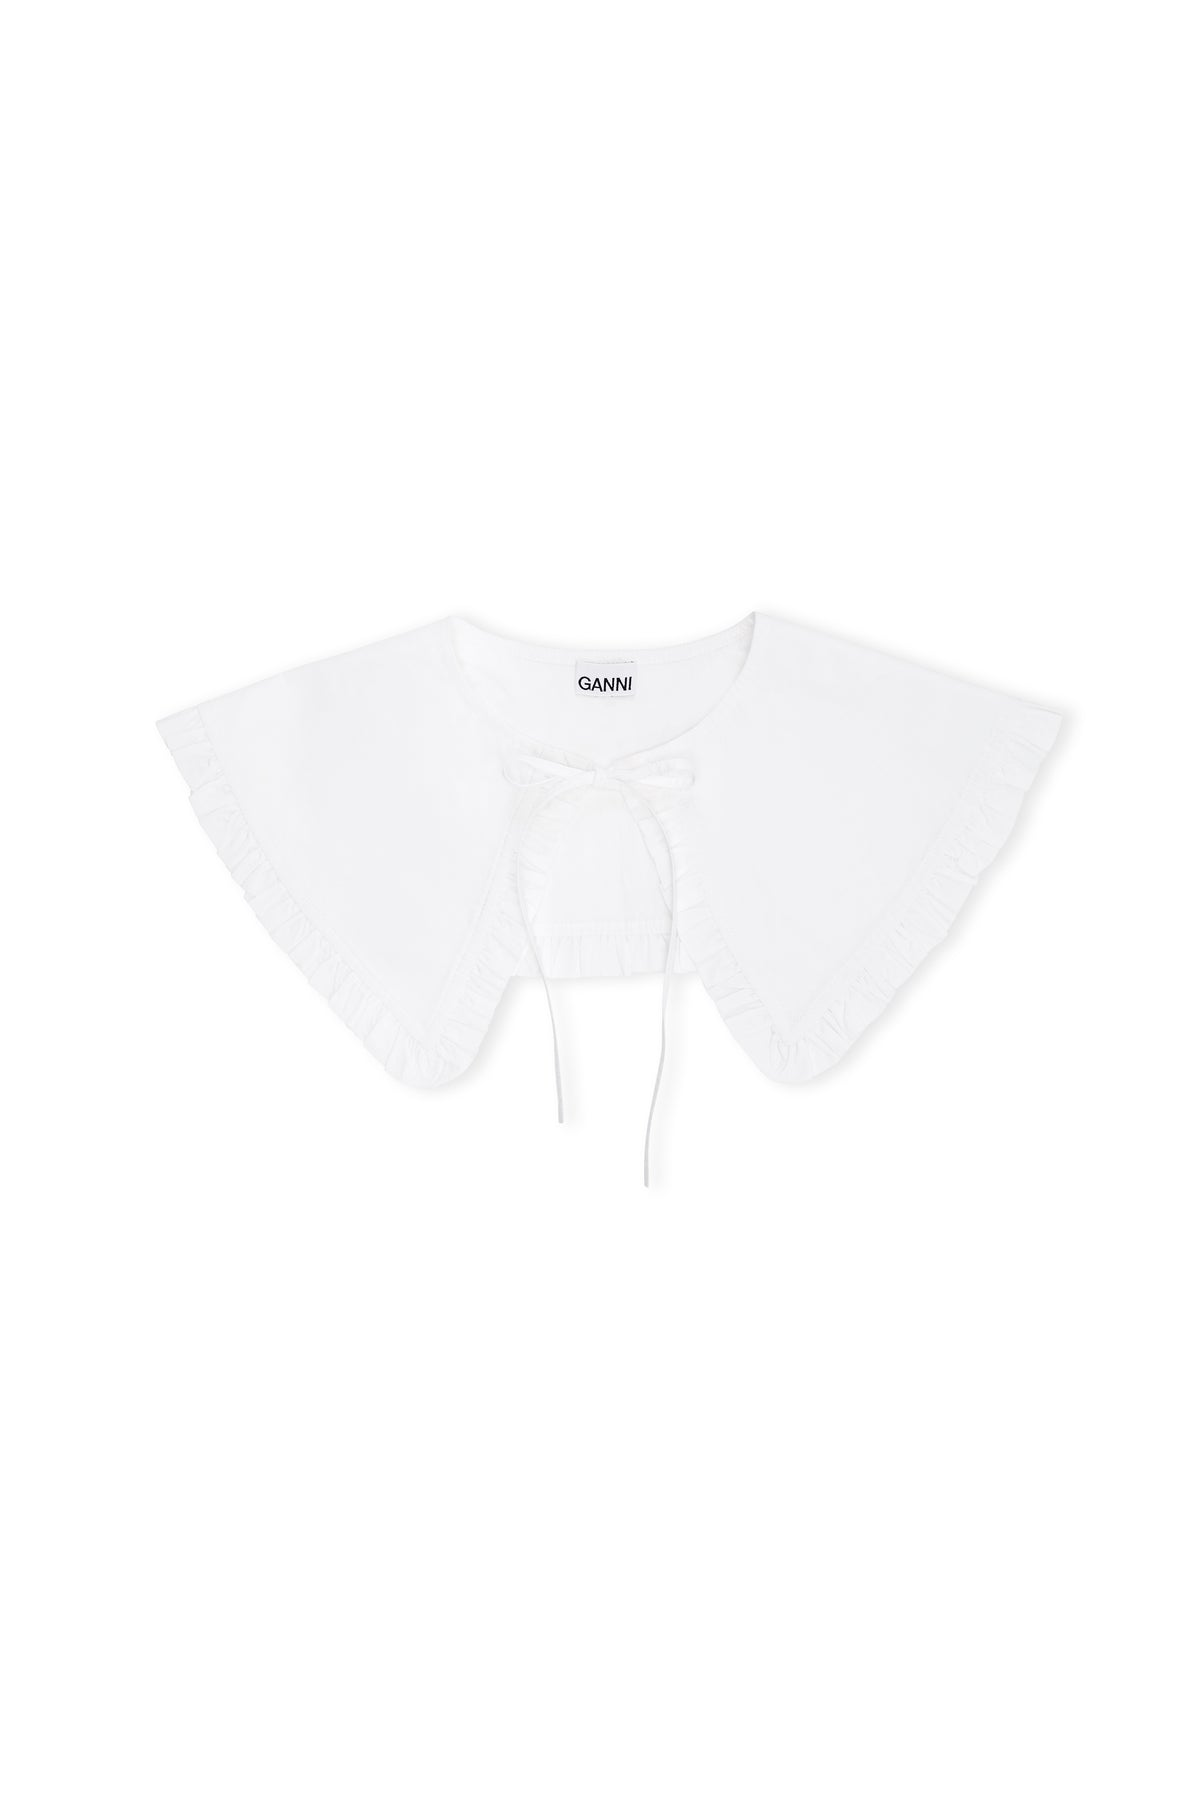 Ganni - Cotton Poplin Collar | Bright White